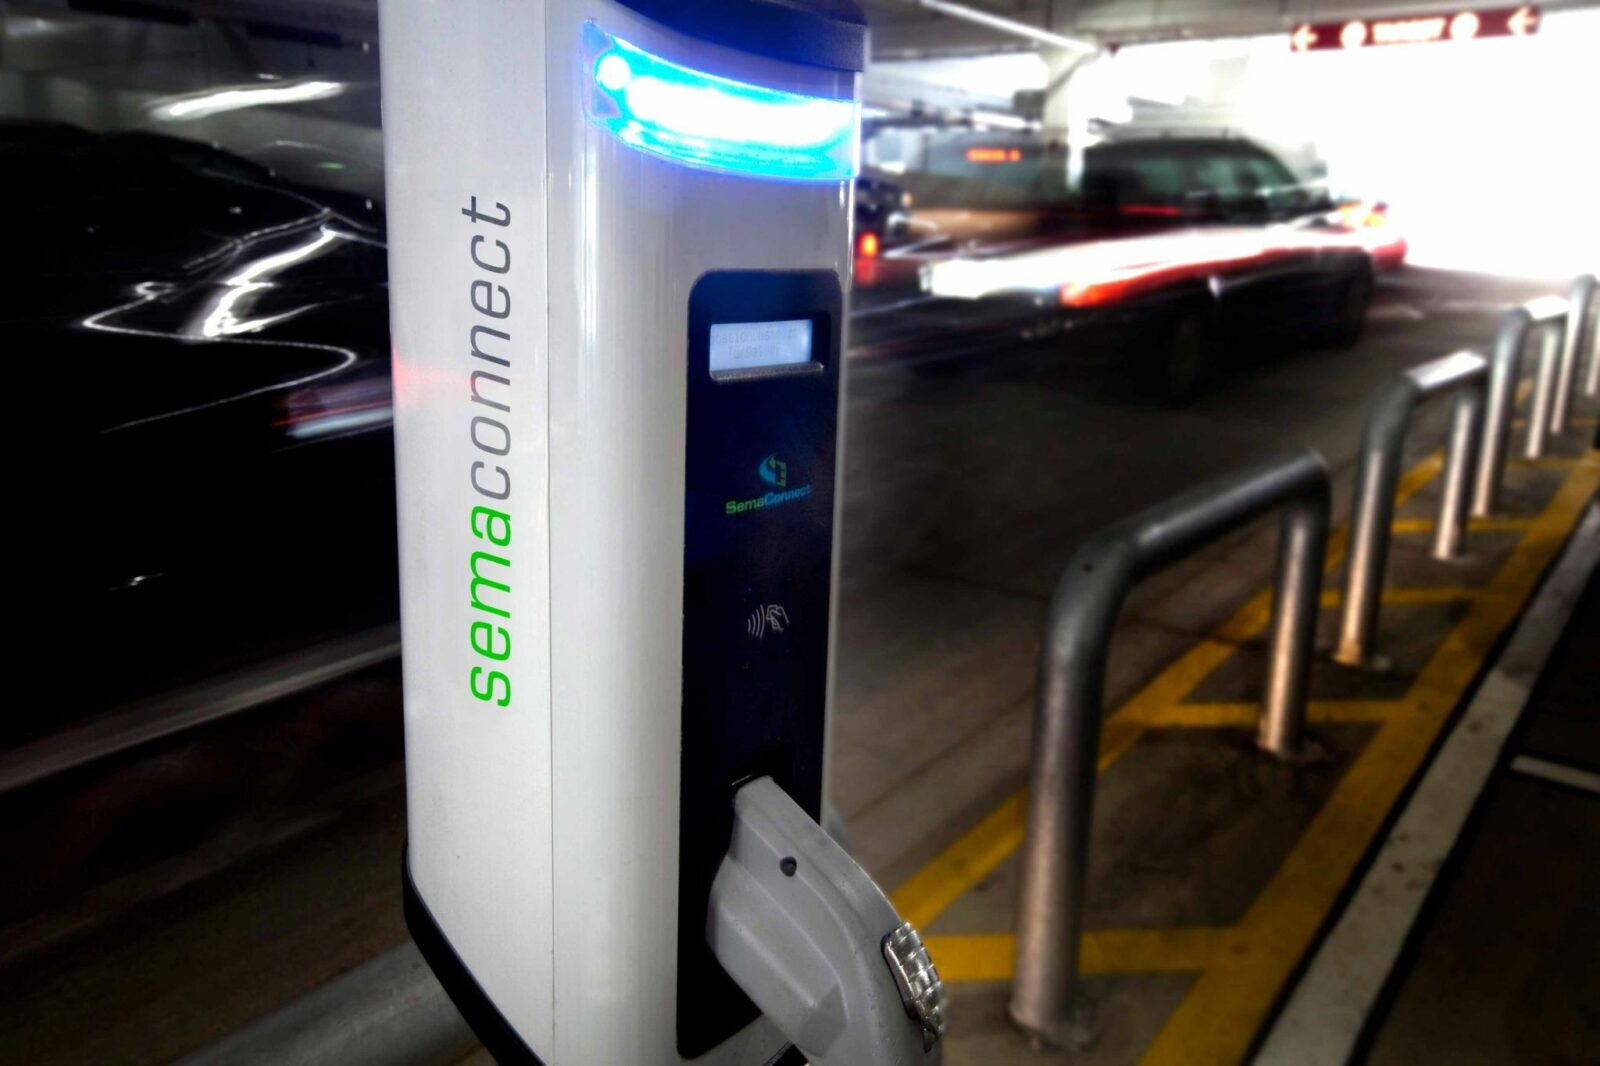 SemaConnect smart EV charging station